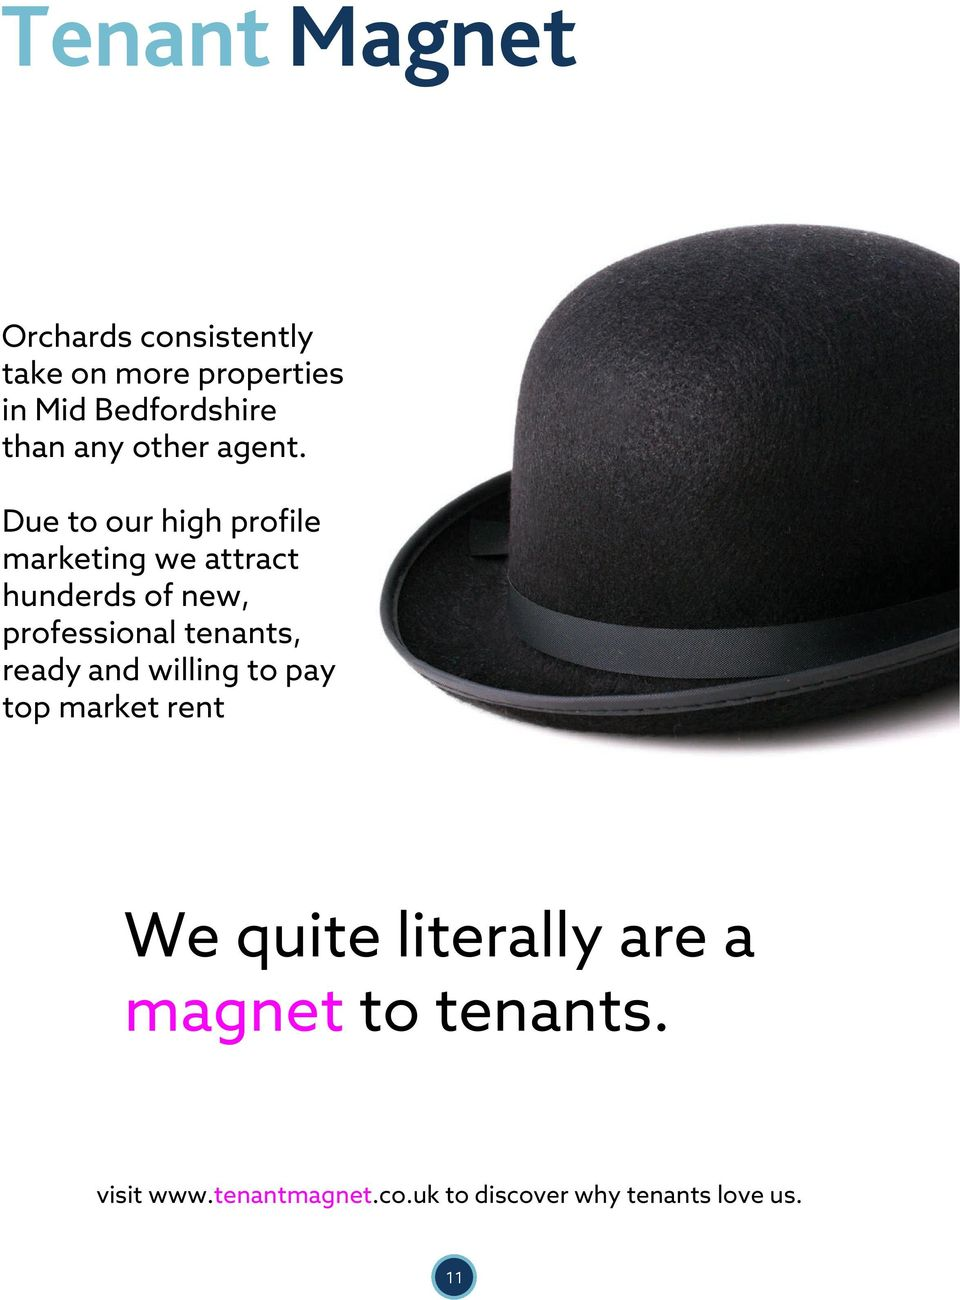 Due to our high profile marketing we attract hunderds of new, professional tenants,